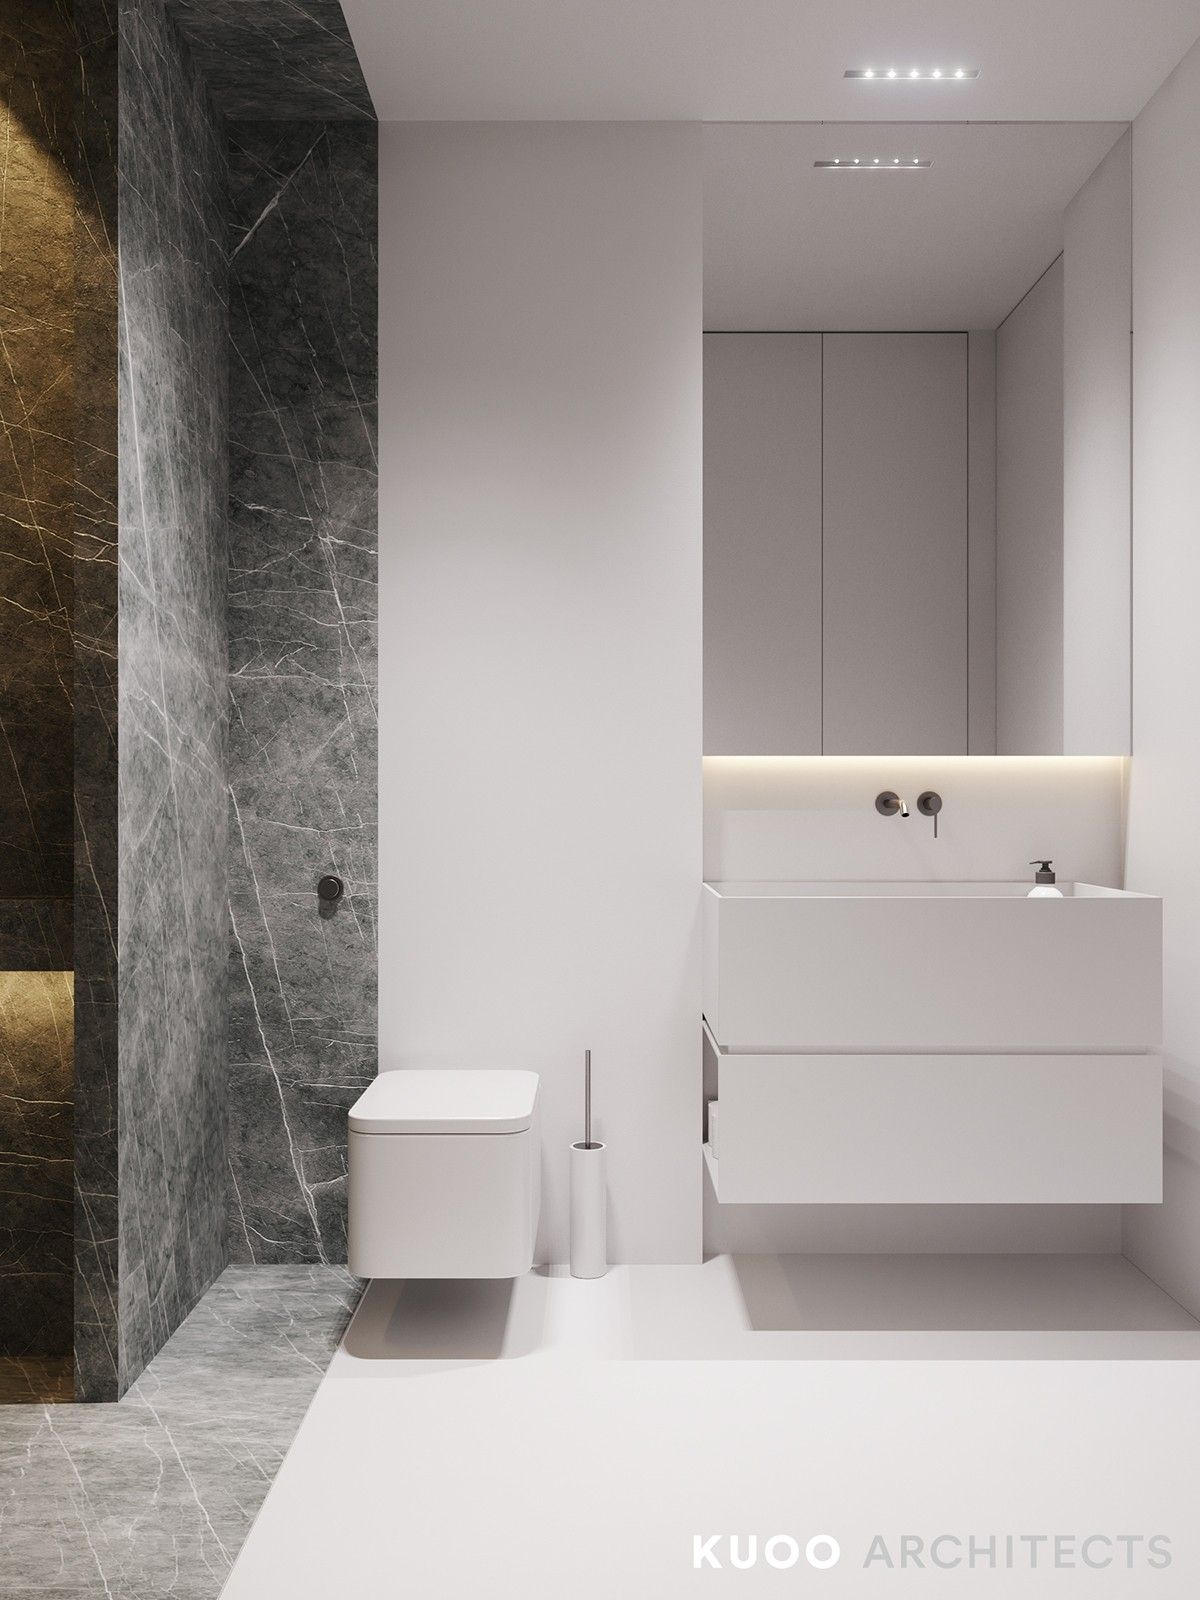 Pin By Sole Sunkel On Łazienka Bathroom Design Inspiration Top Bathroom Design Luxury Bathroom